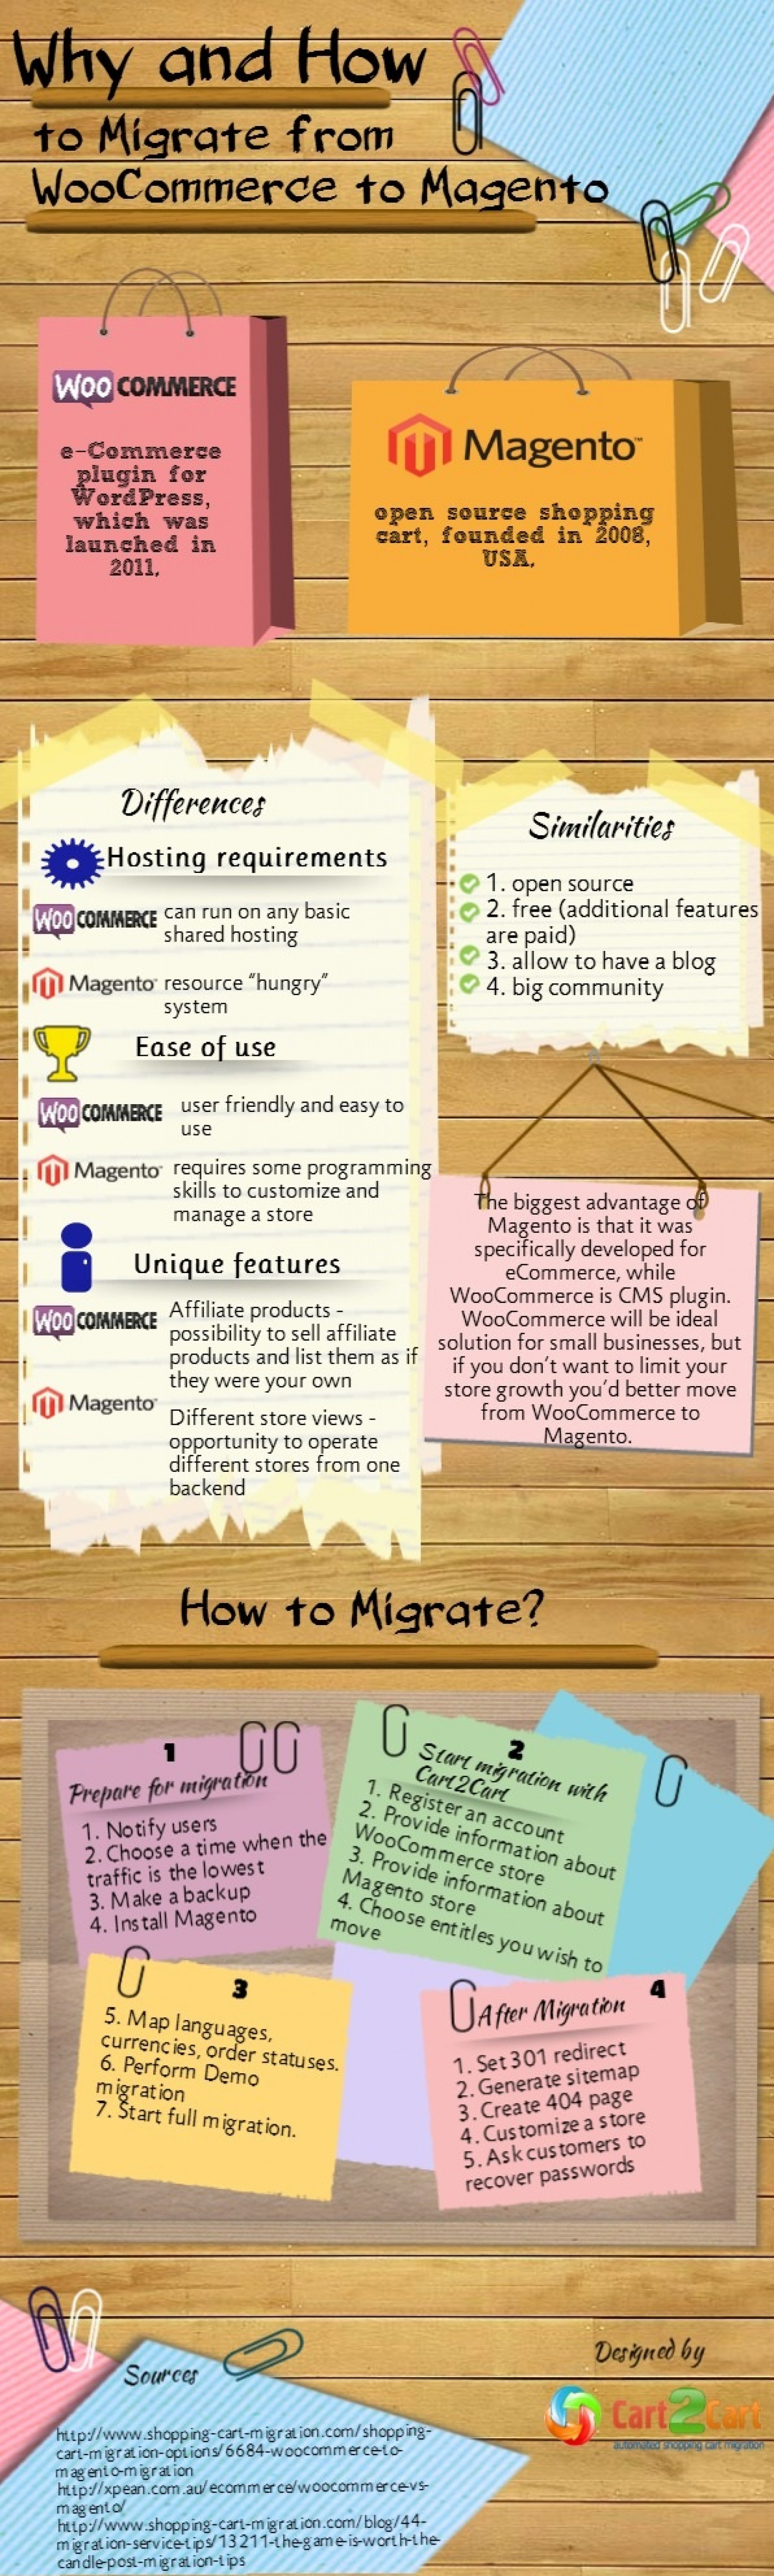 Why and How to Migrate from WooCommerce to Magento Infographic